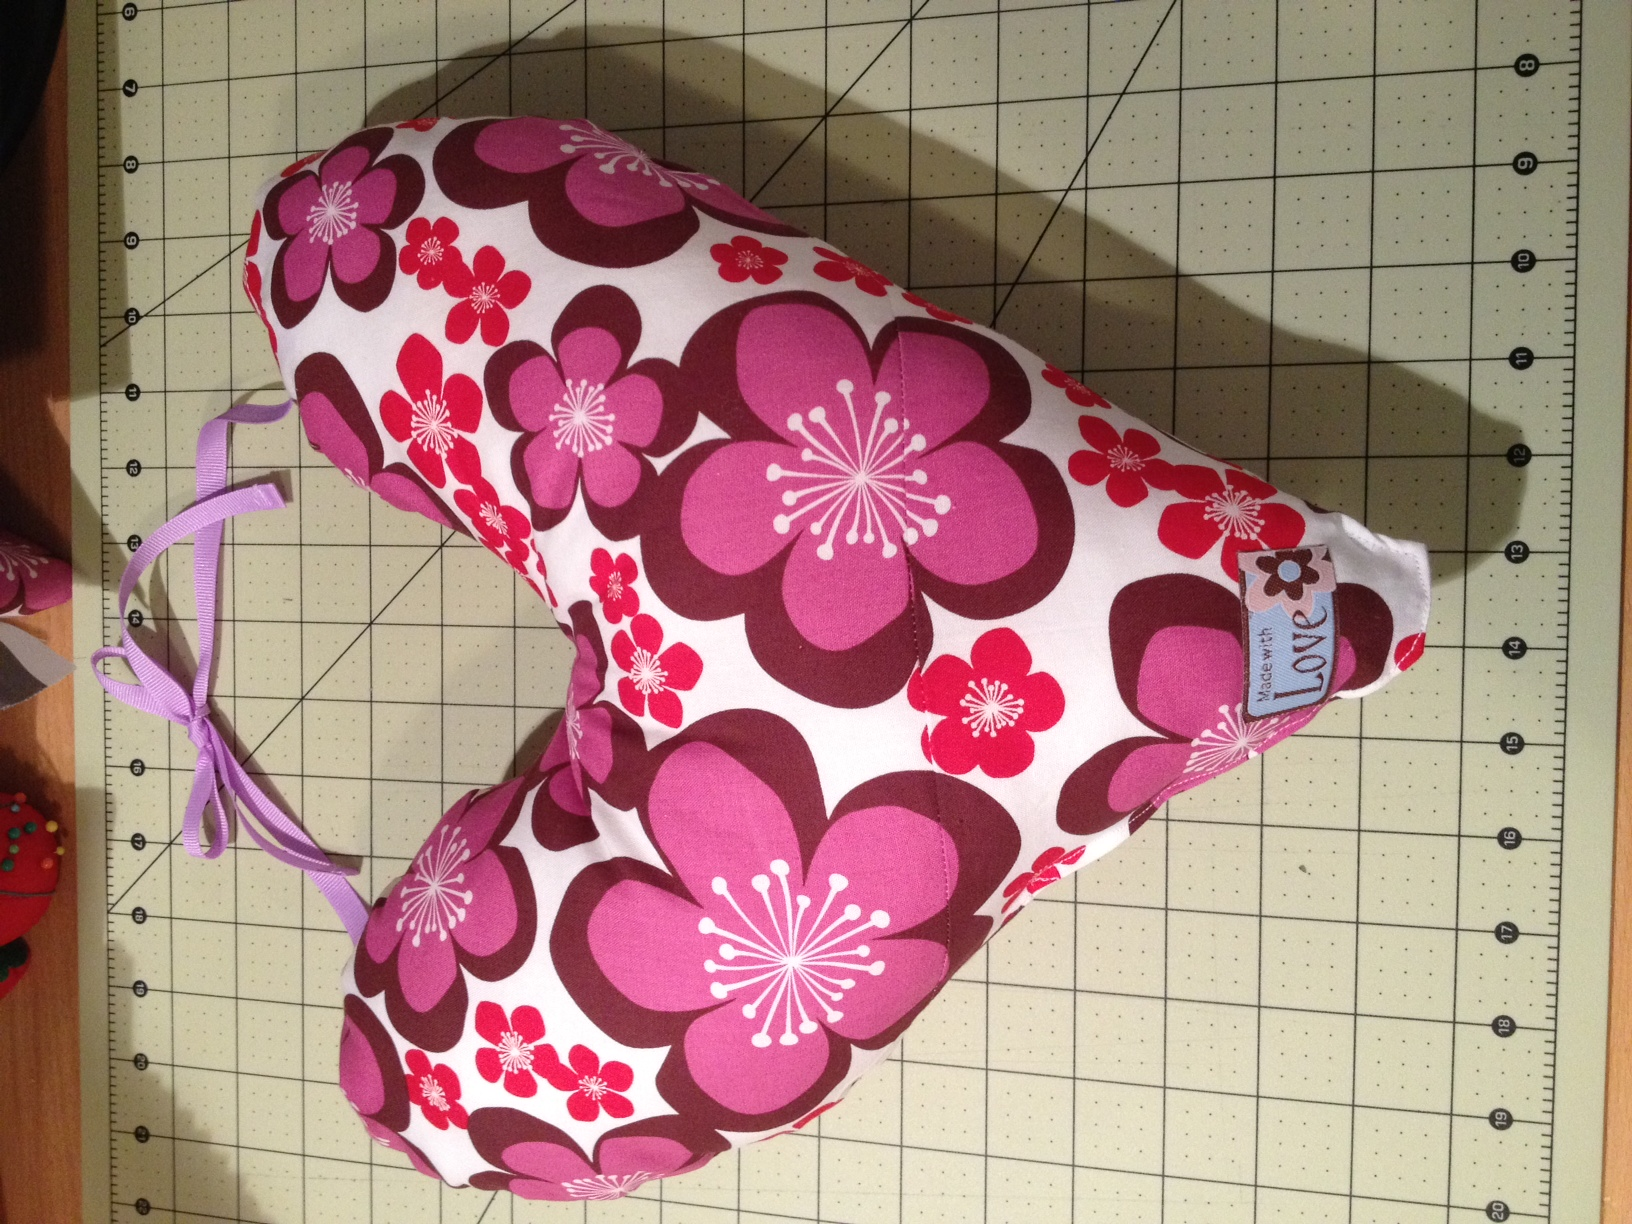 Echo Quilt Progress, Heart Pillows for Mastectomy Patients, Final ... : quilt patterns for cancer patients - Adamdwight.com